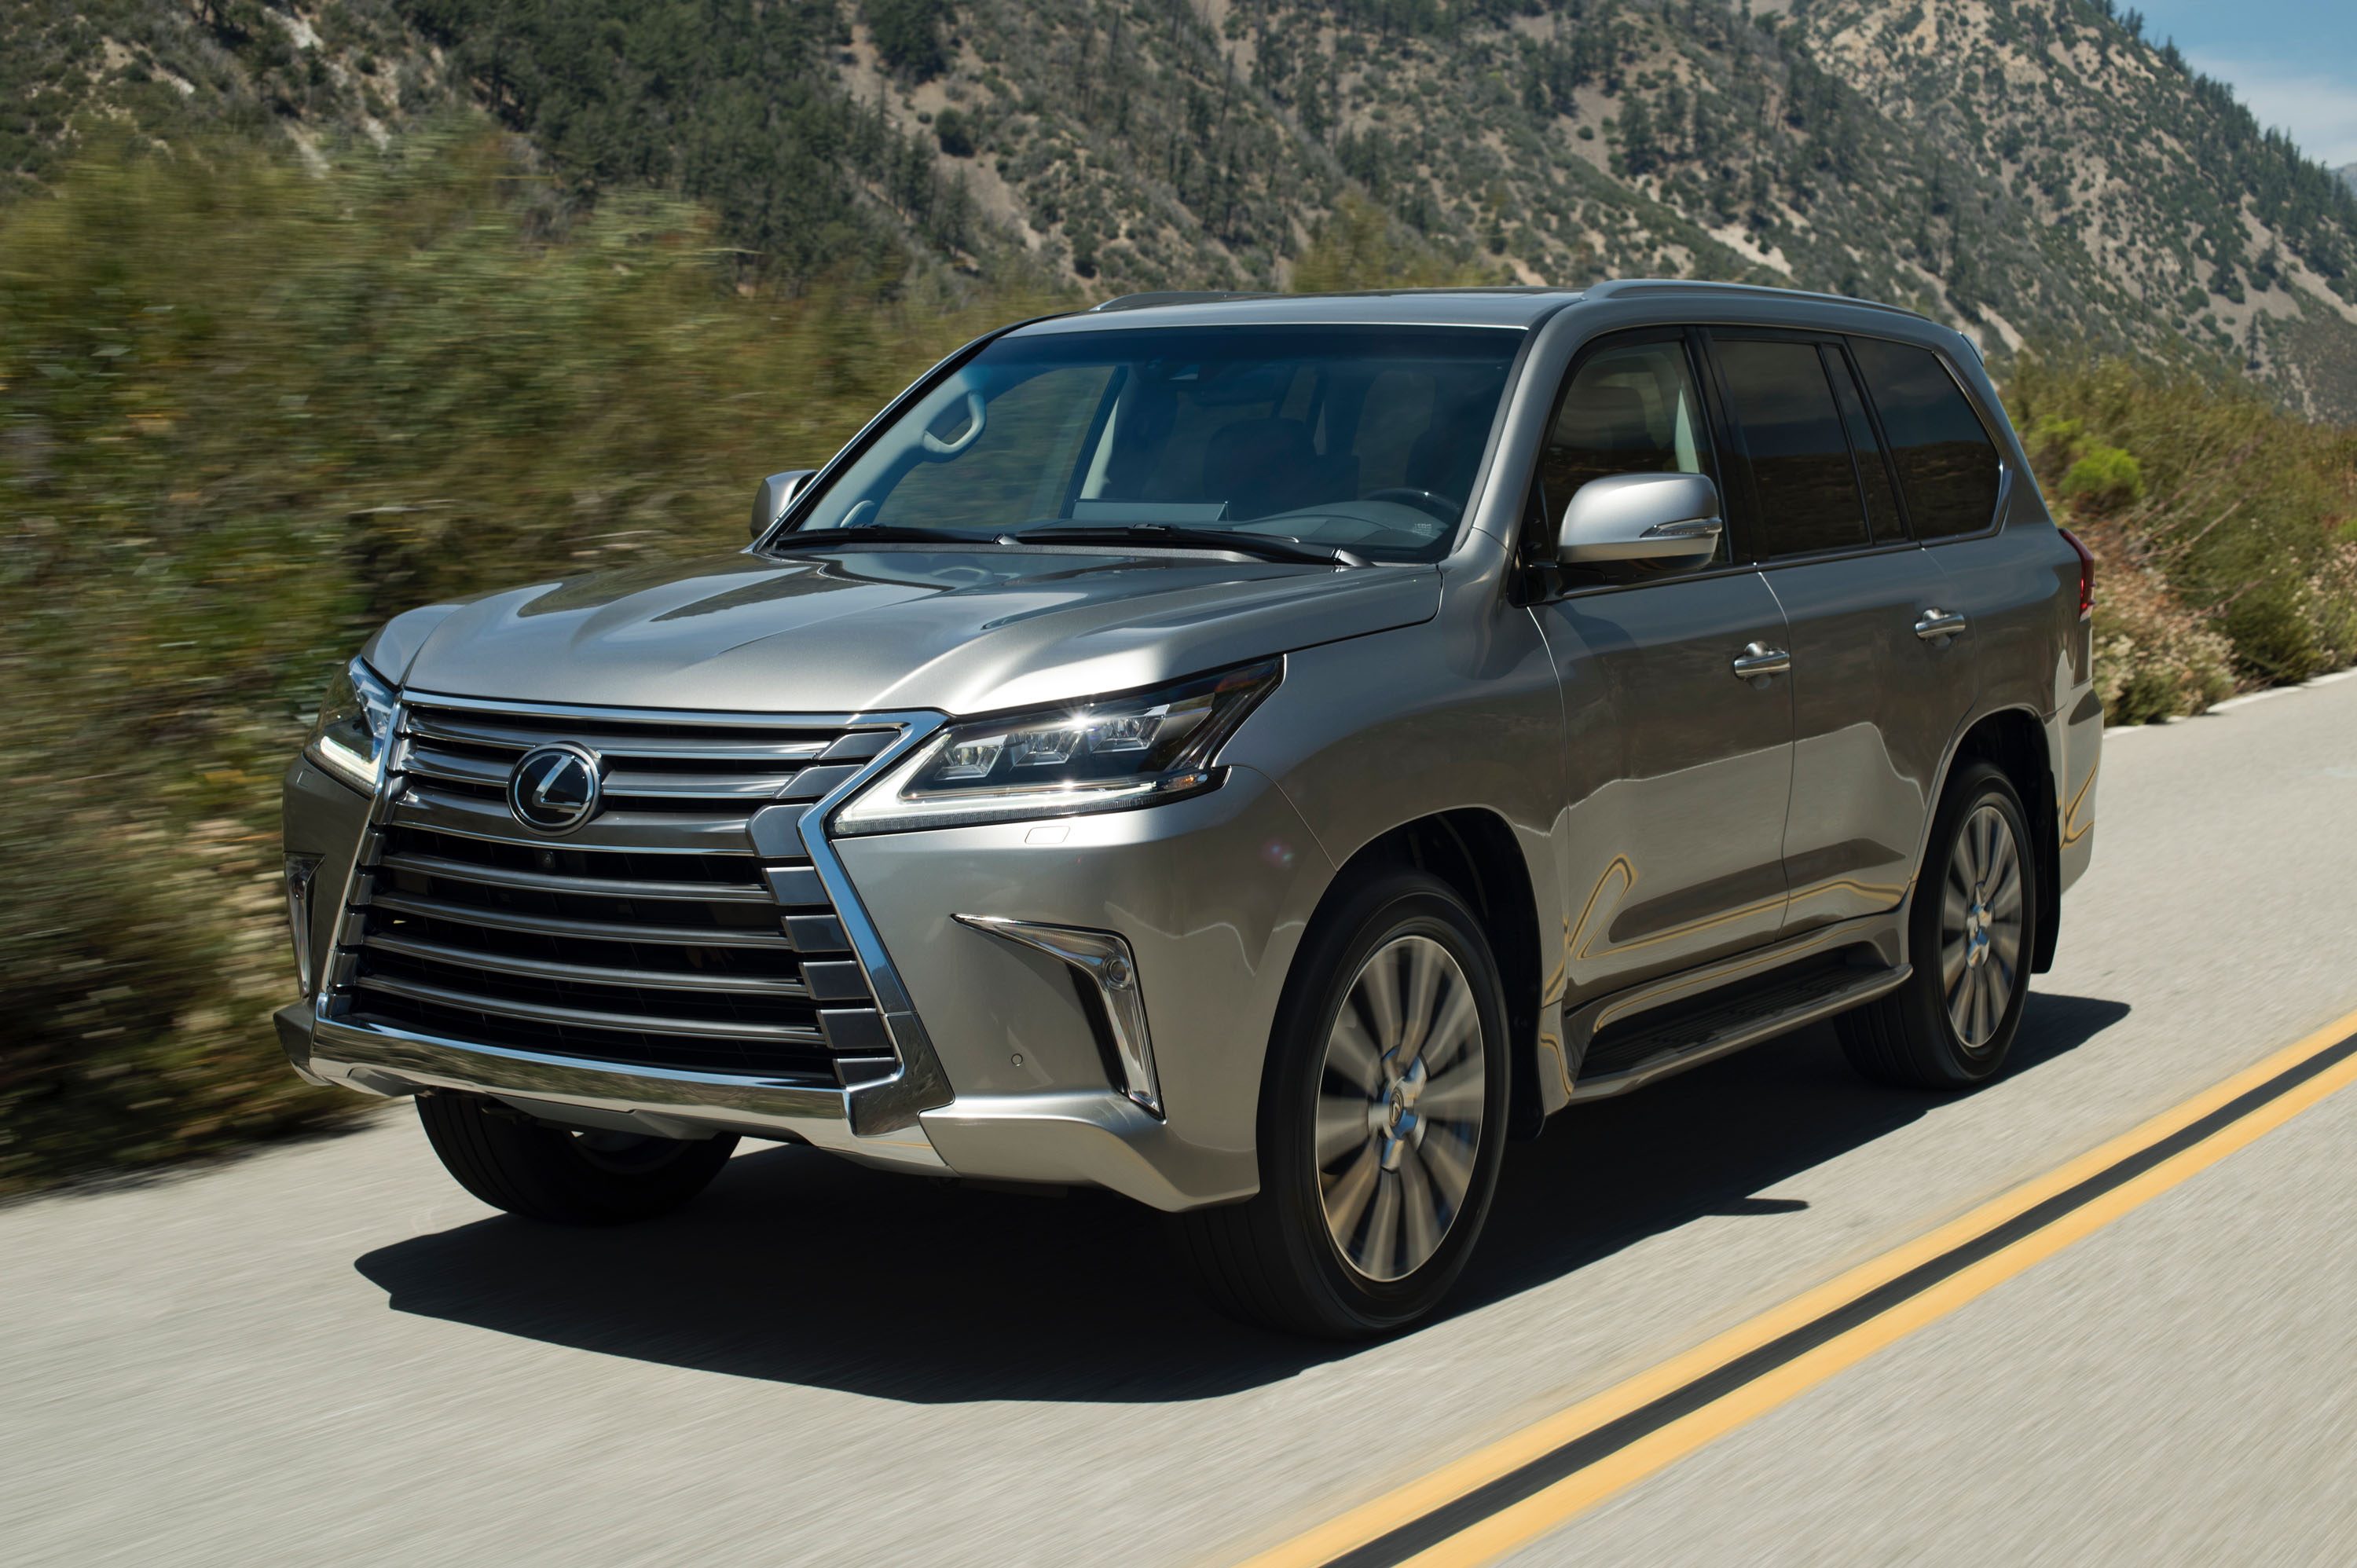 Manufacturer photo: The Lexus LX 570 conquers any type of terrain in comfort, whether on rocky country roads or rugged city streets